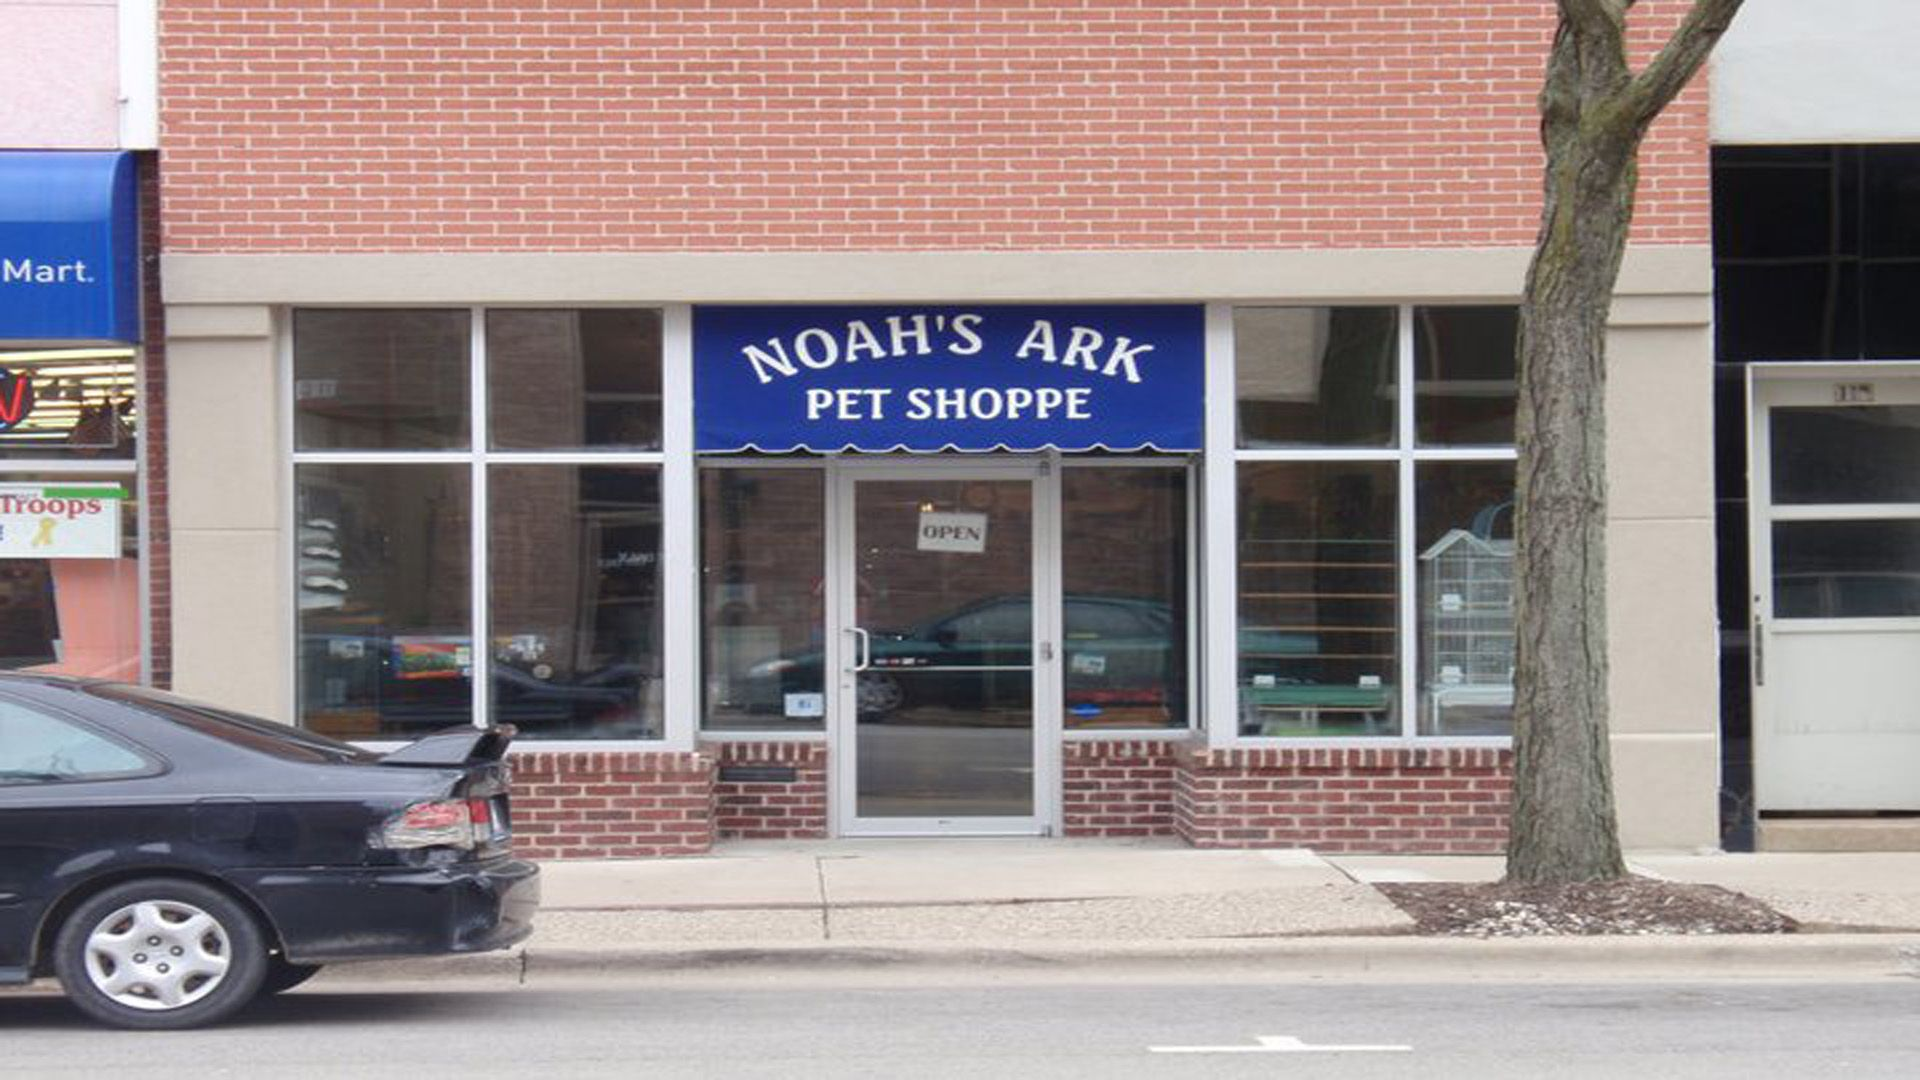 Noah S Ark Is A Twelve Year Olds Dream Come True Our Pet Shoppe Offers Effingham S Healthiest Critters And A Helpful Team An In 2020 Effingham Noahs Ark Outdoor Decor